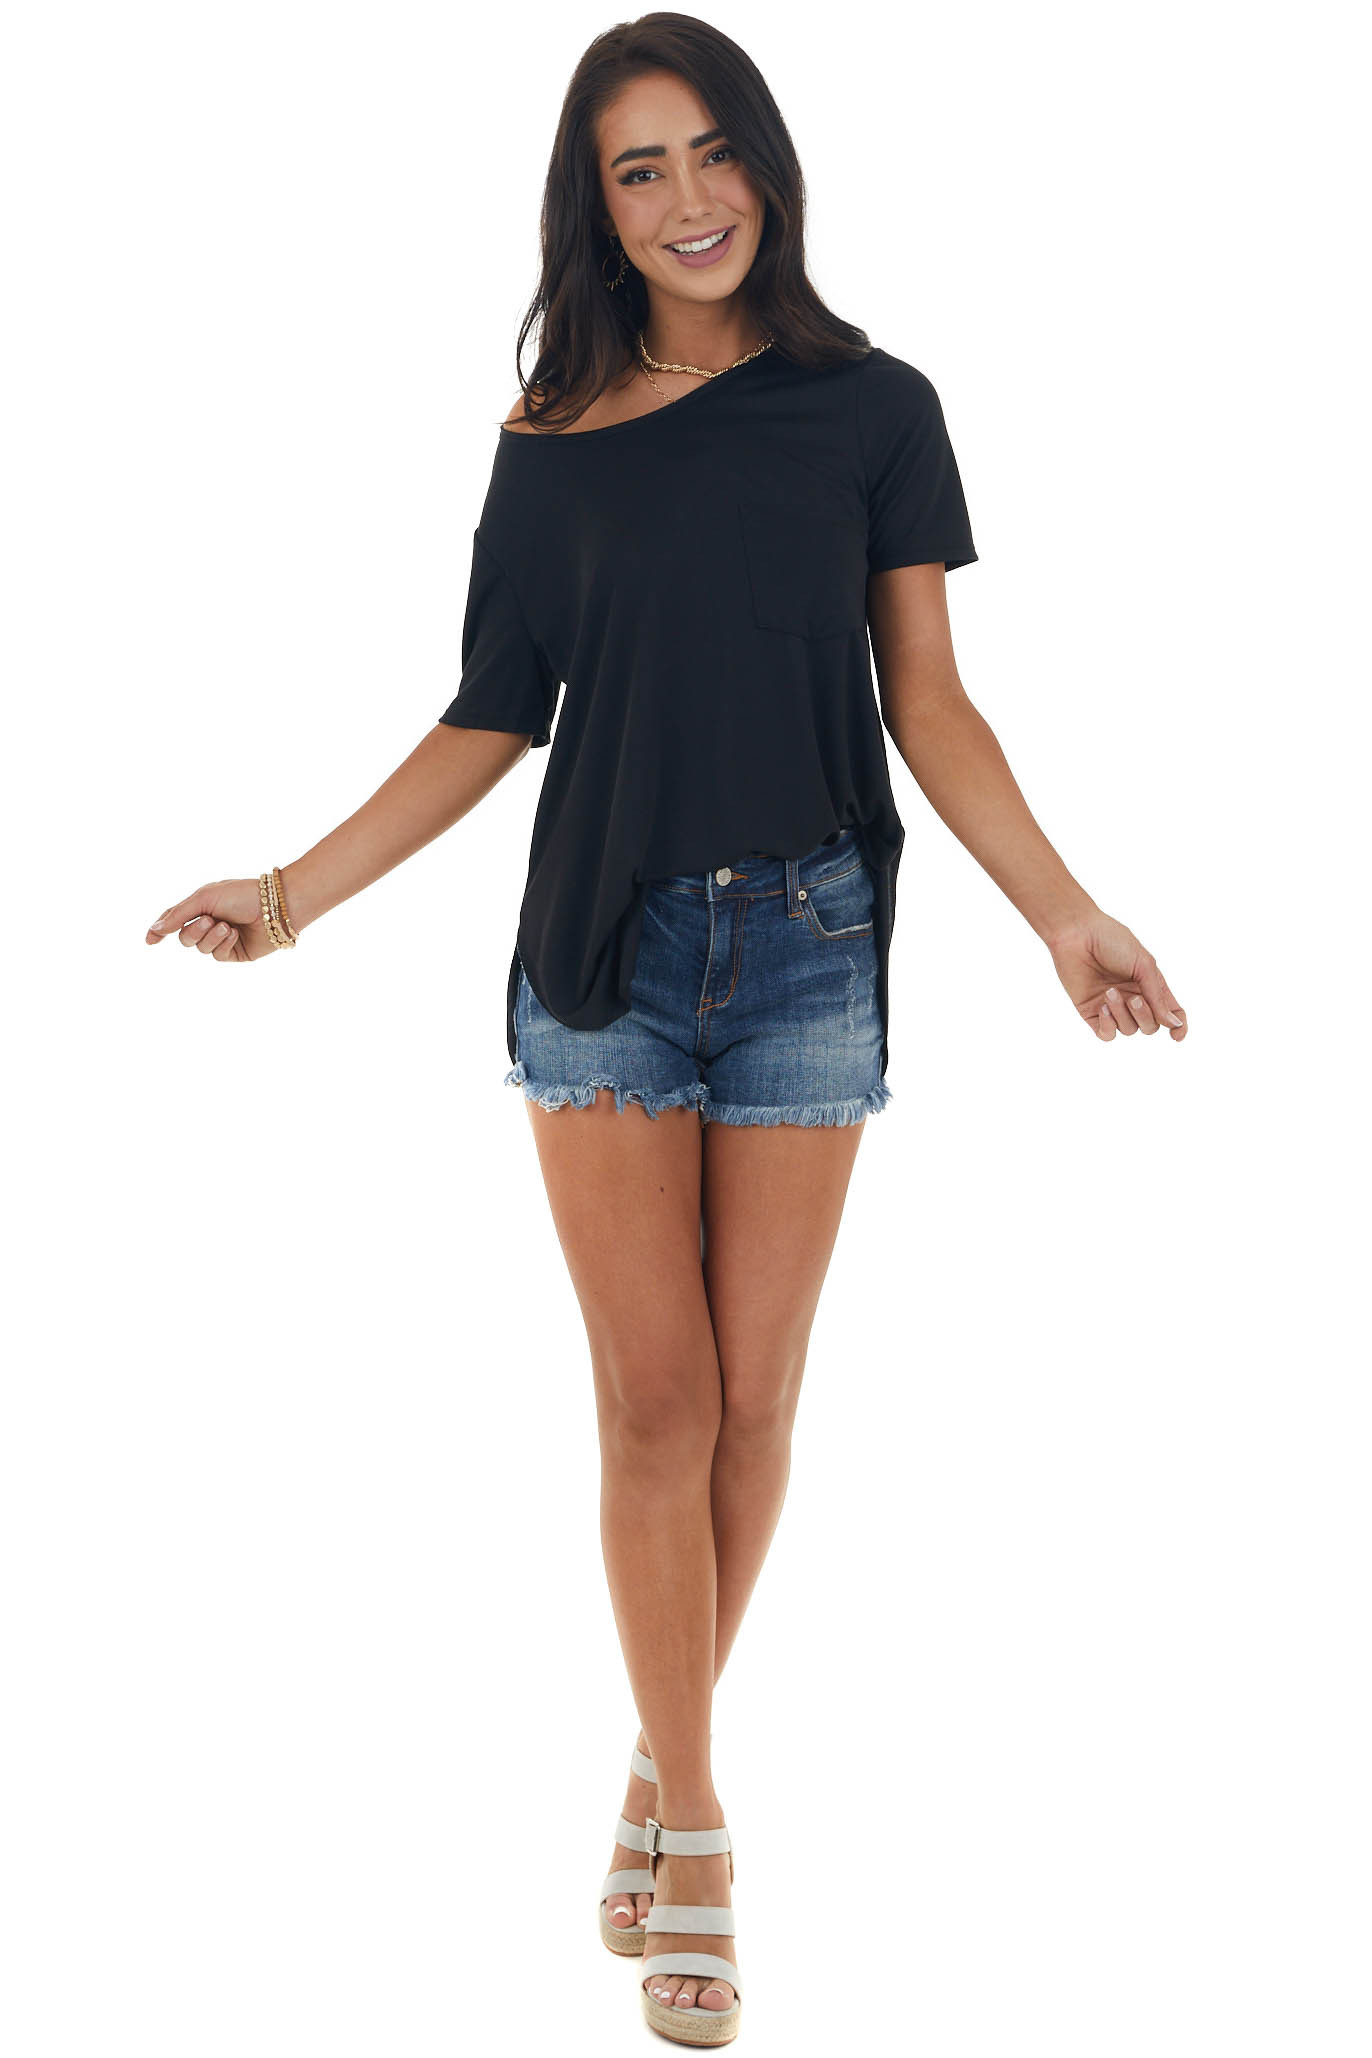 Black Flowy Knit Top with Single Chest Pocket